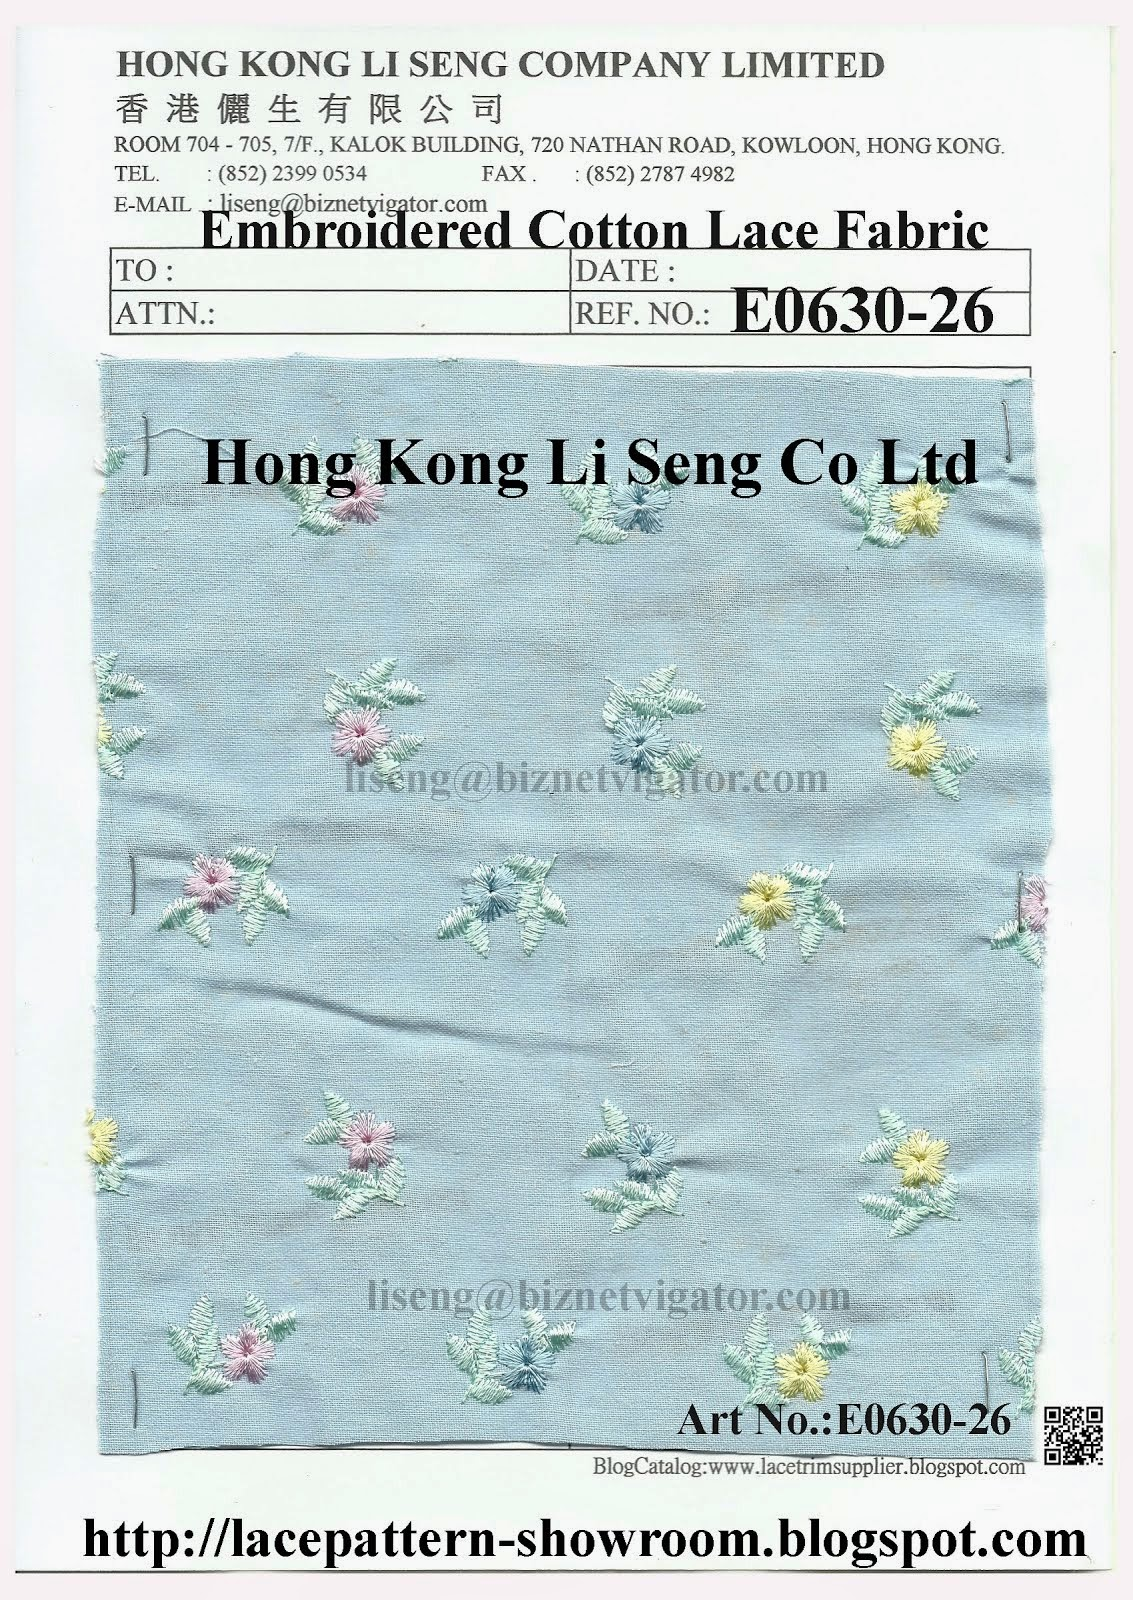 New Embroidered Cotton Lace Fabric Manufacturer Wholesaler and Supplier - Hong Kong Li Seng Co Ltd